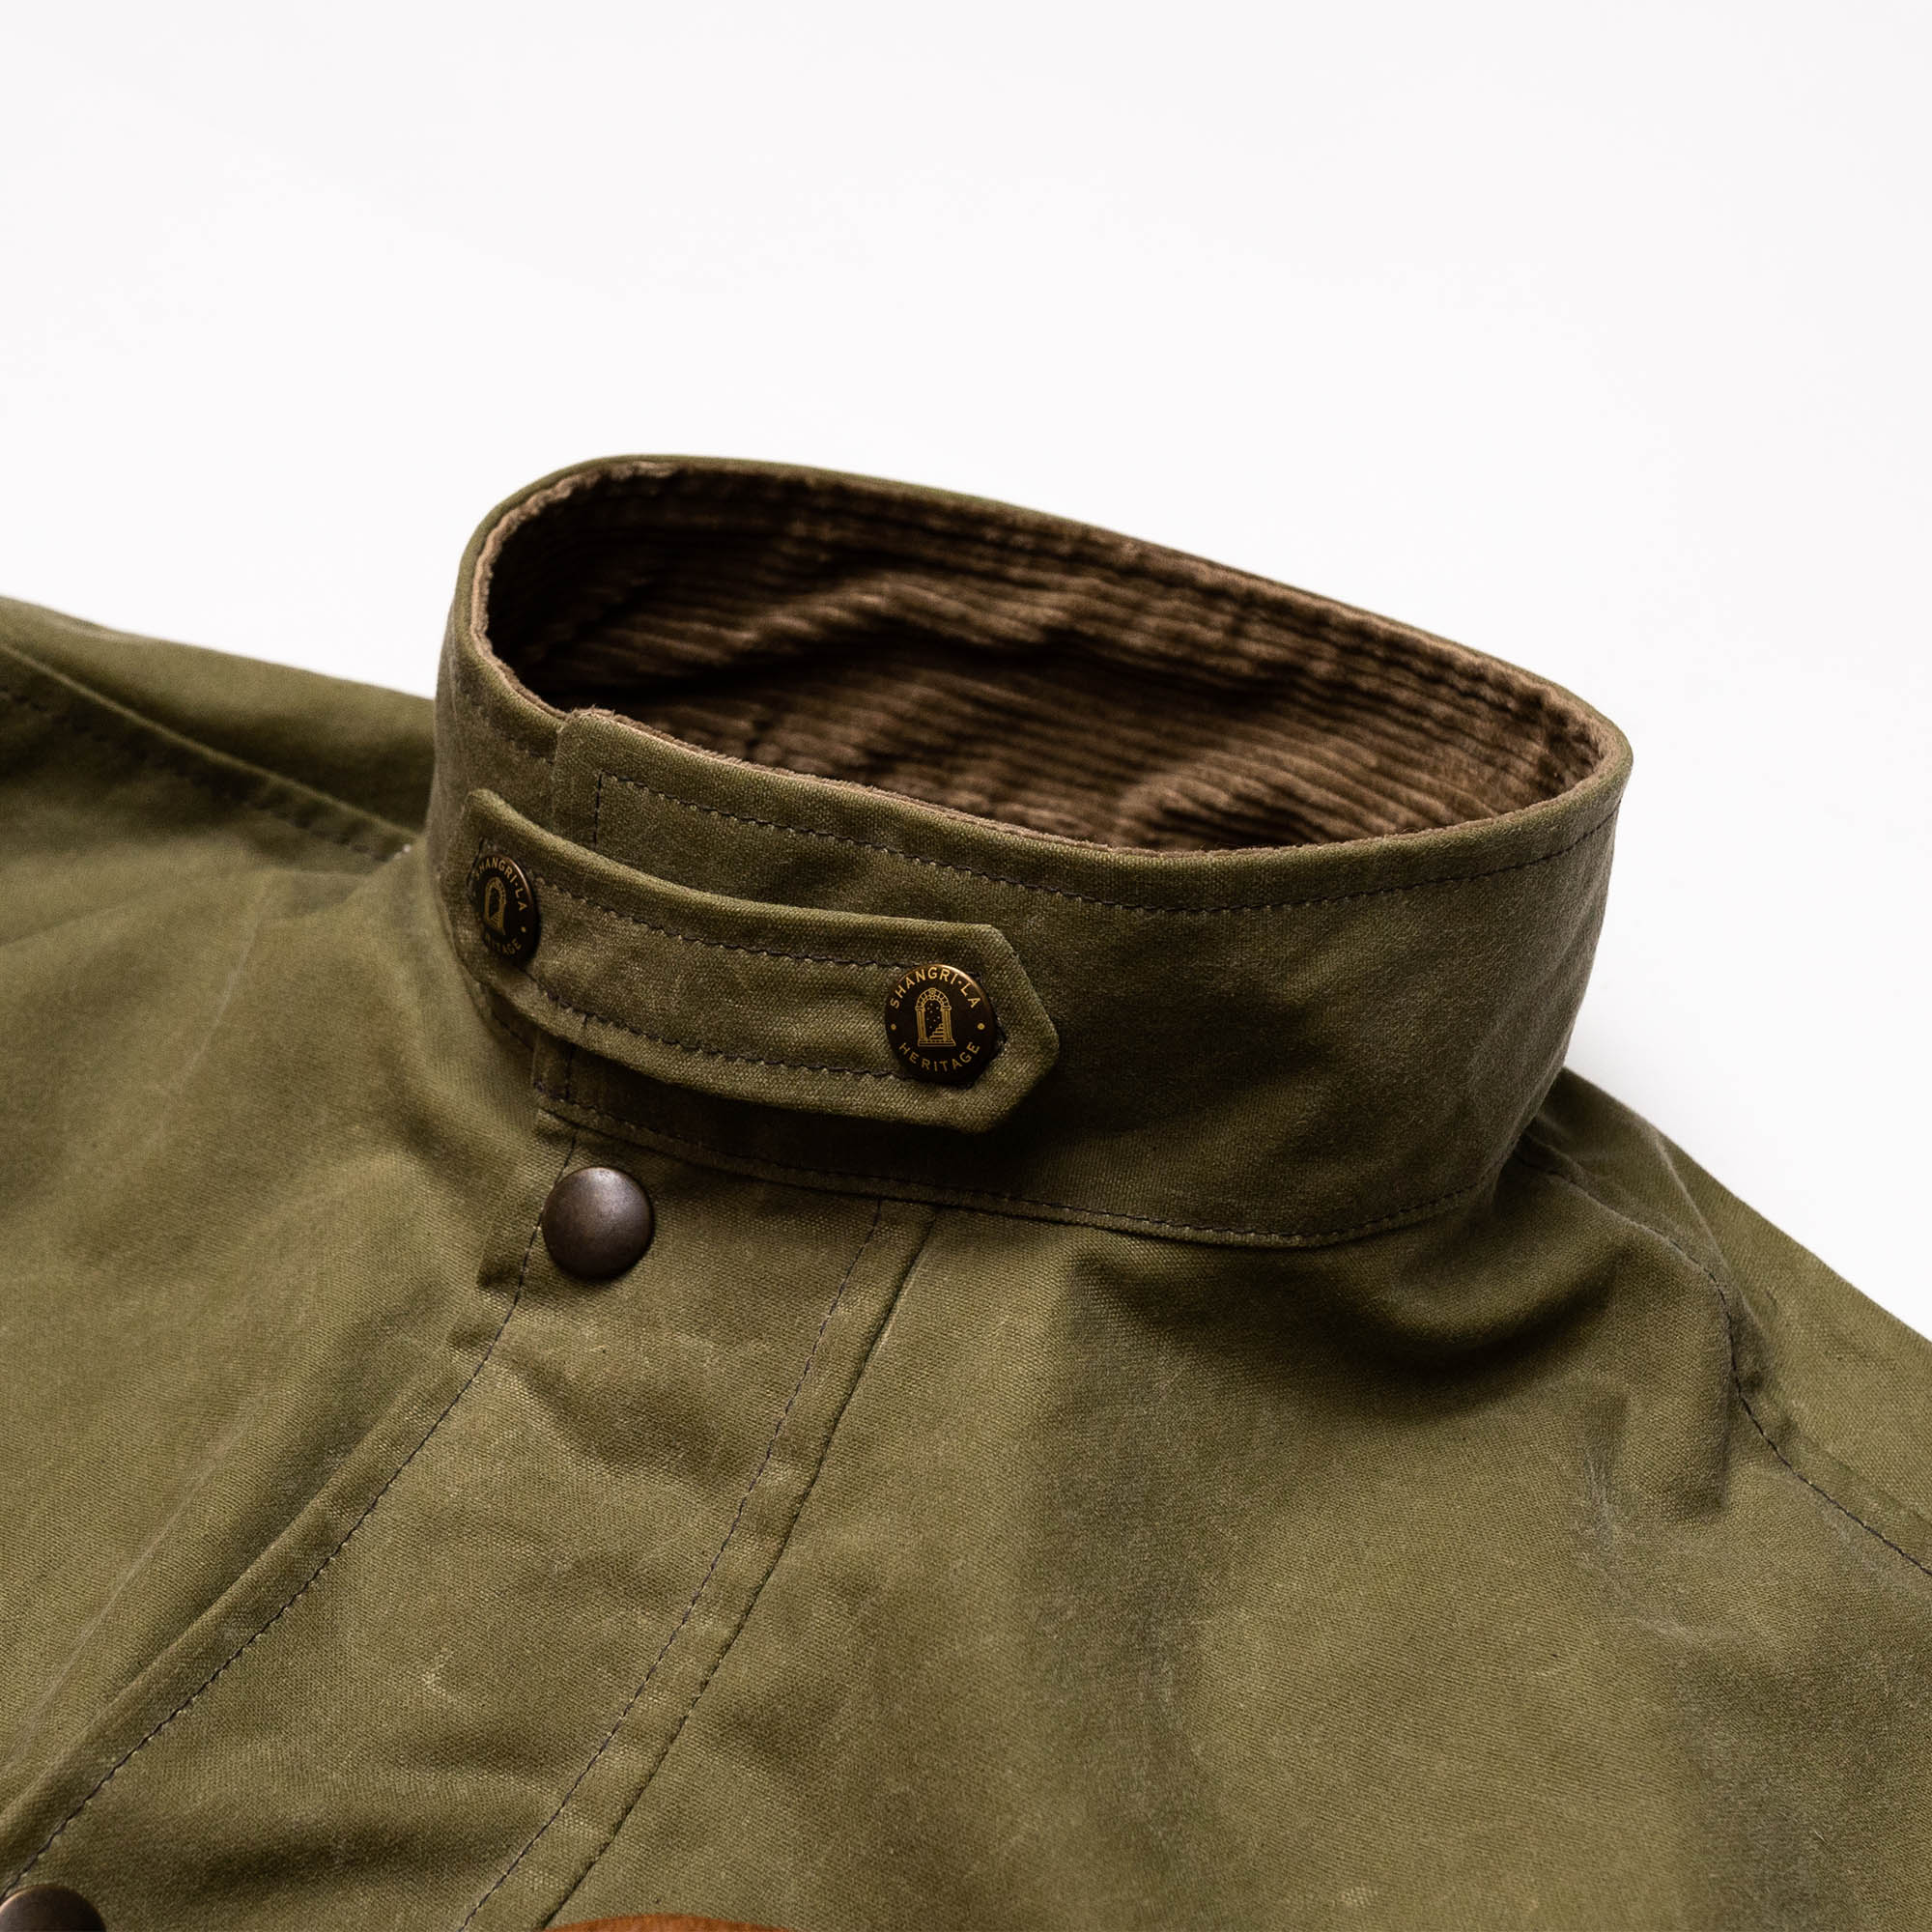 shangri-la-heritage-explorator-waxed-canvas-jacket-still-life-front-collar-closed